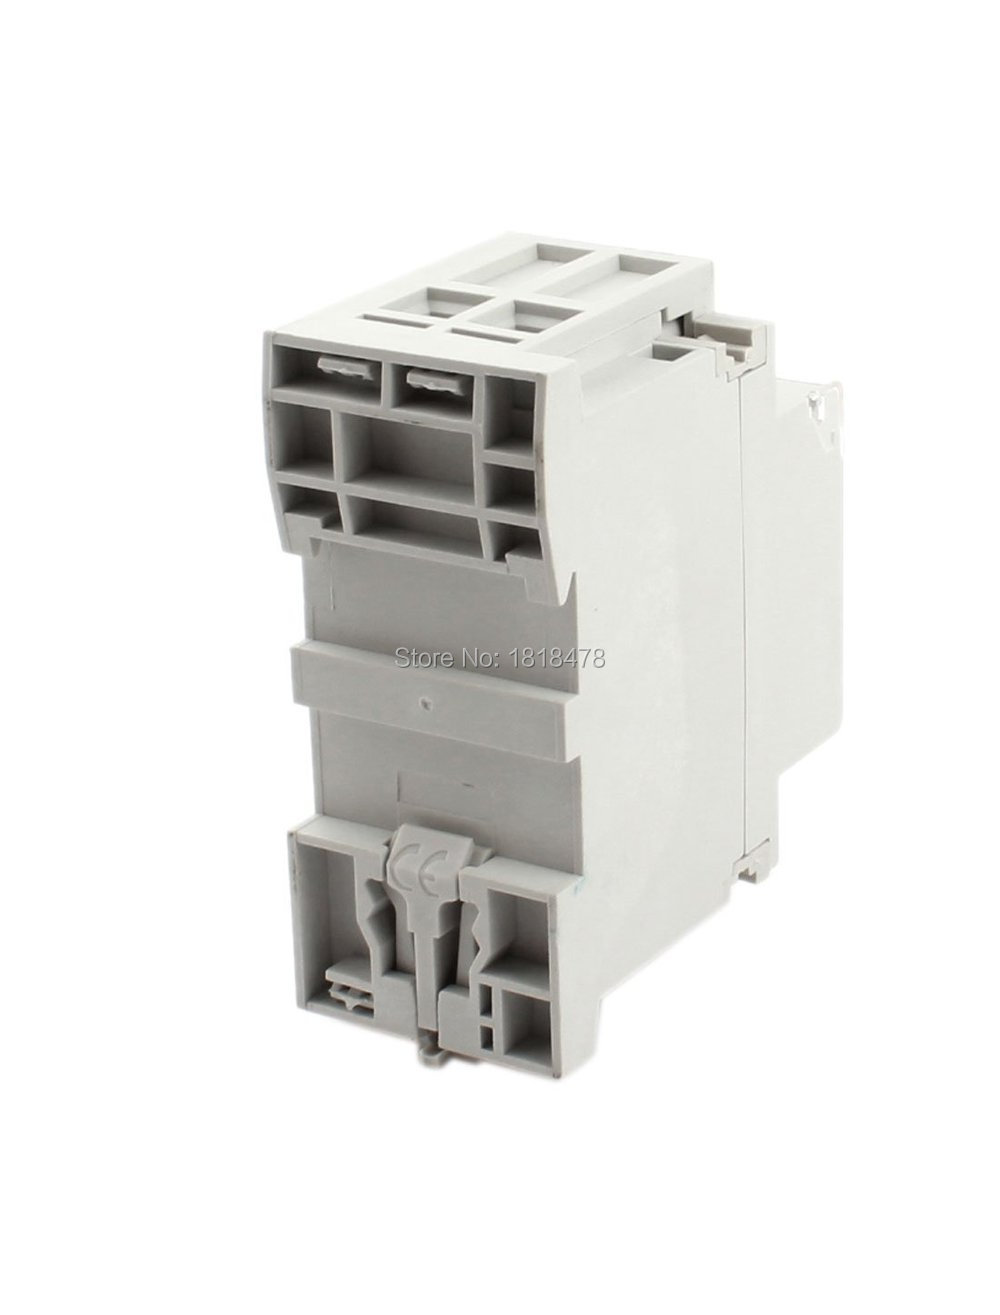 Hc1 63 63a 110v Coil Voltage 2 Pole Universal Circuit Control Ac Wiring Contactor 2pole In Contactors From Home Improvement On Alibaba Group